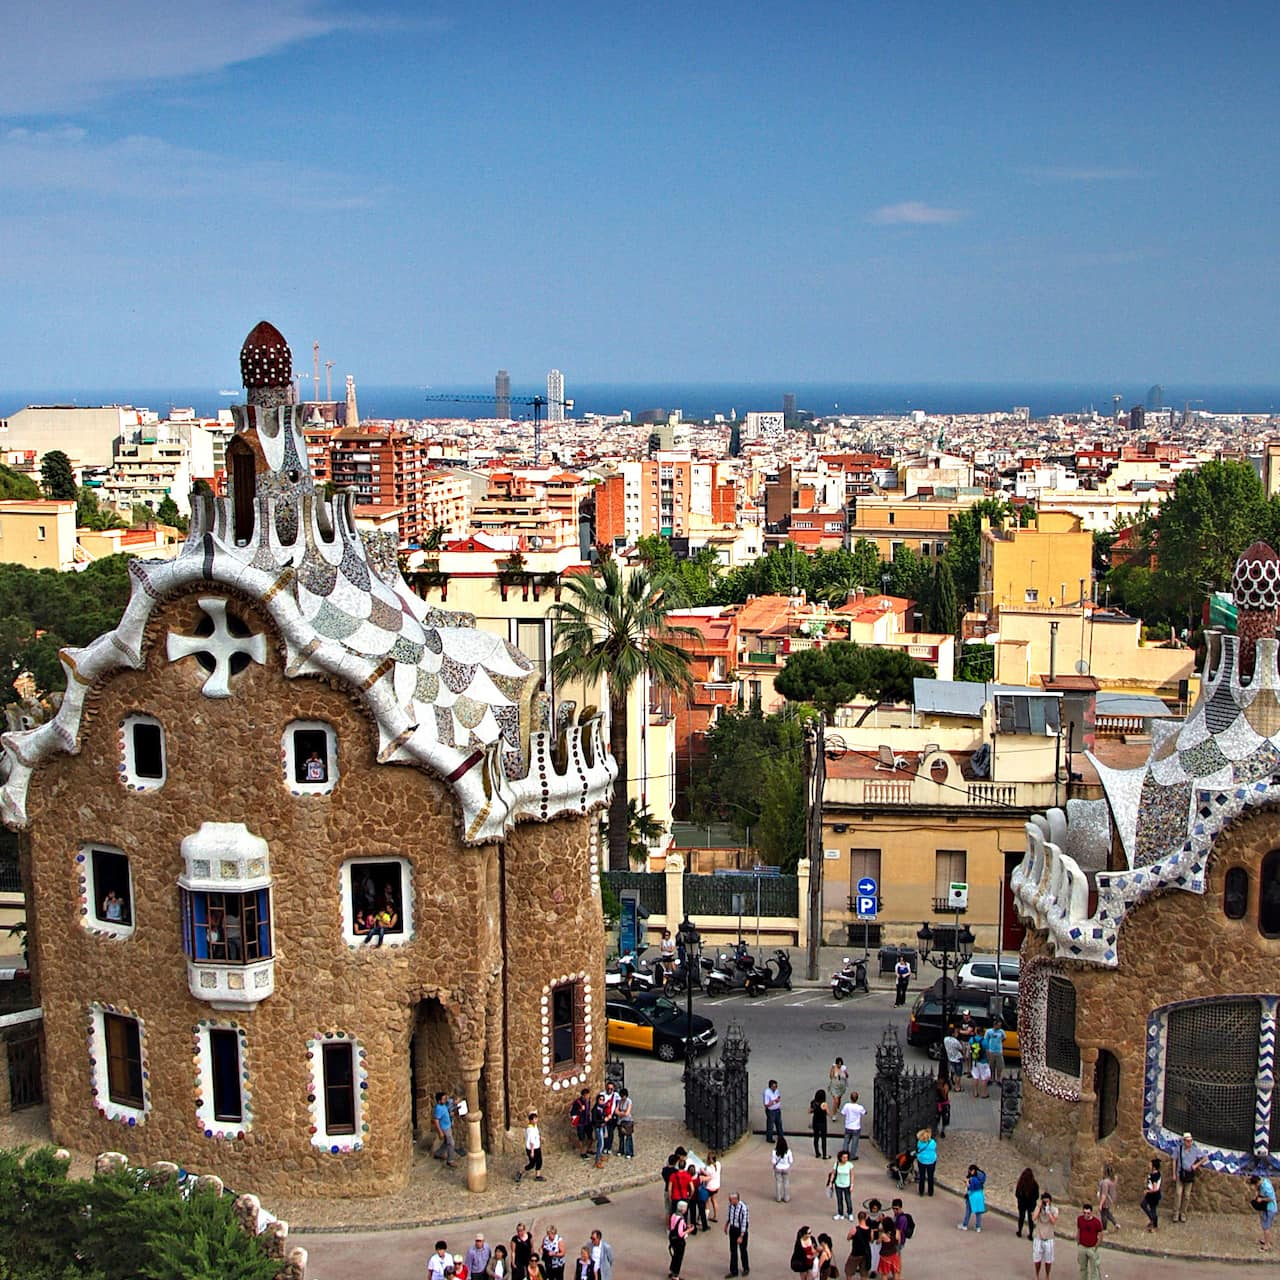 Gaudí's gingerbread-style houses in Park Güell